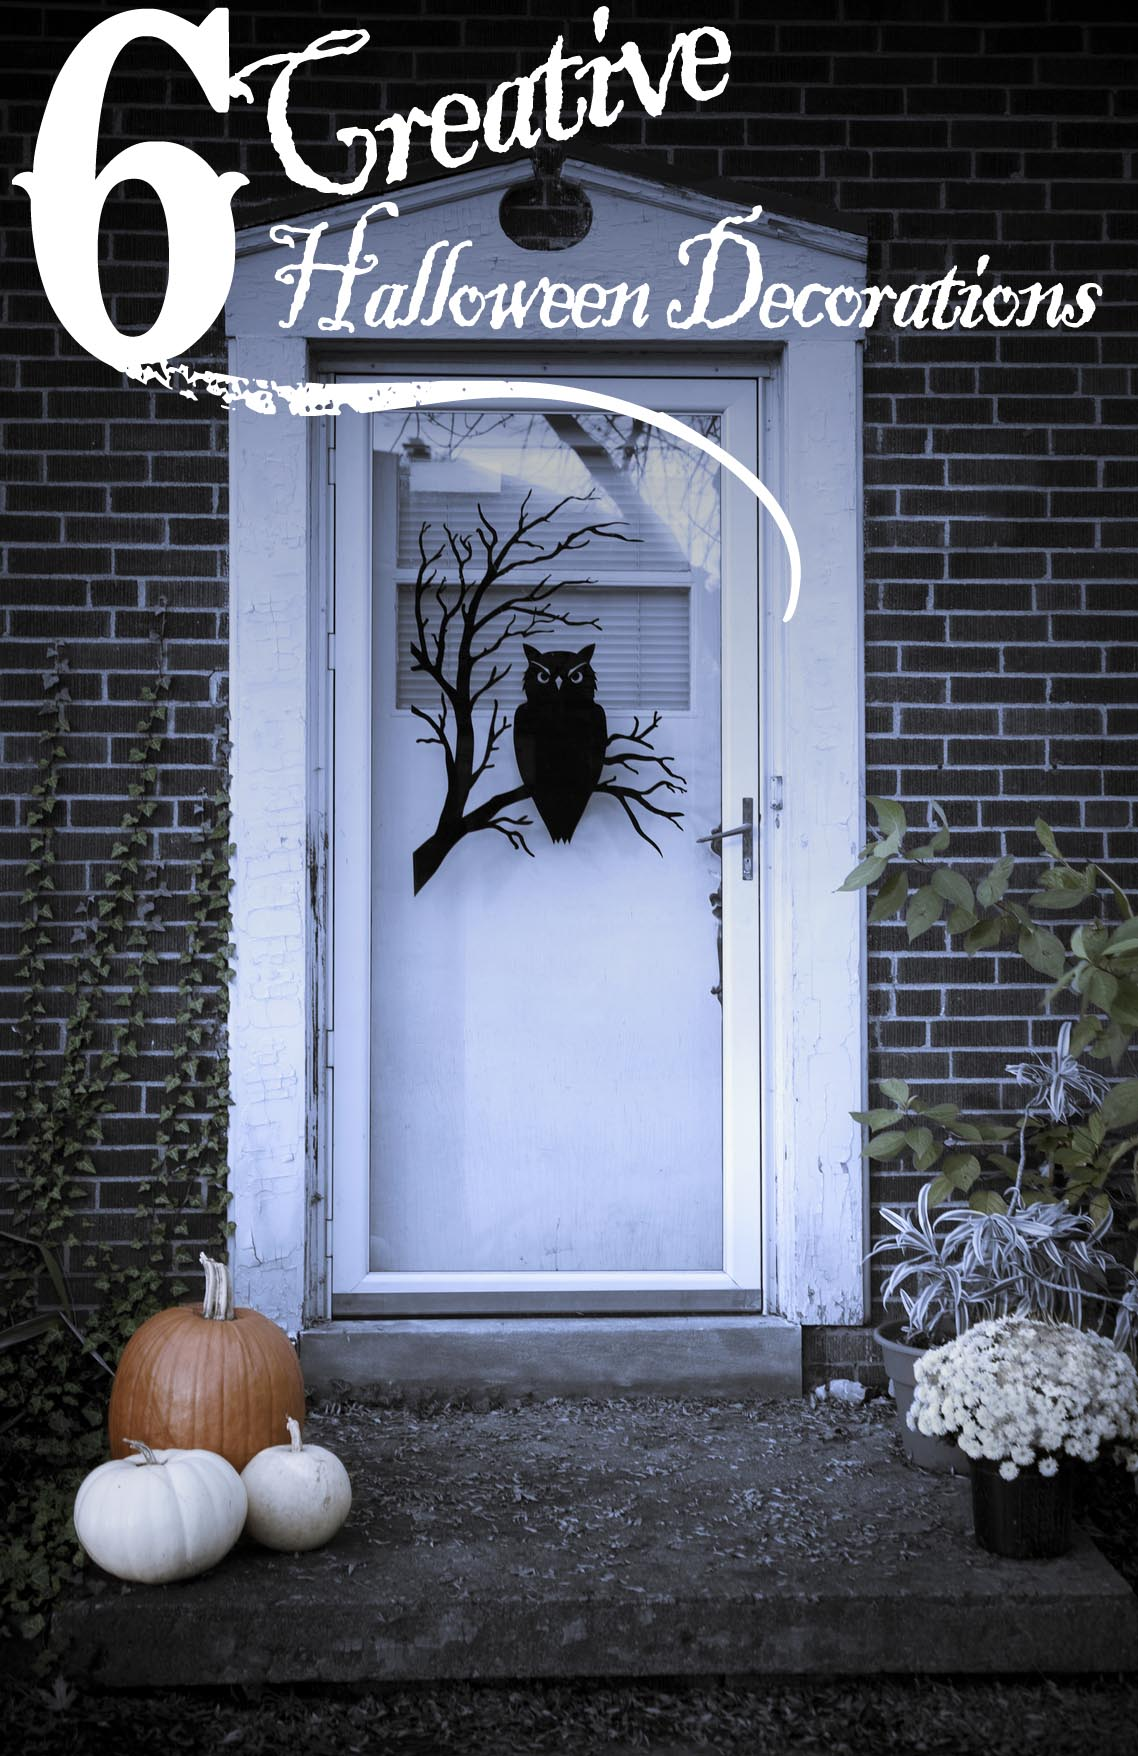 6 Creative Halloween Decorations - Unique Halloween Decoration Ideas